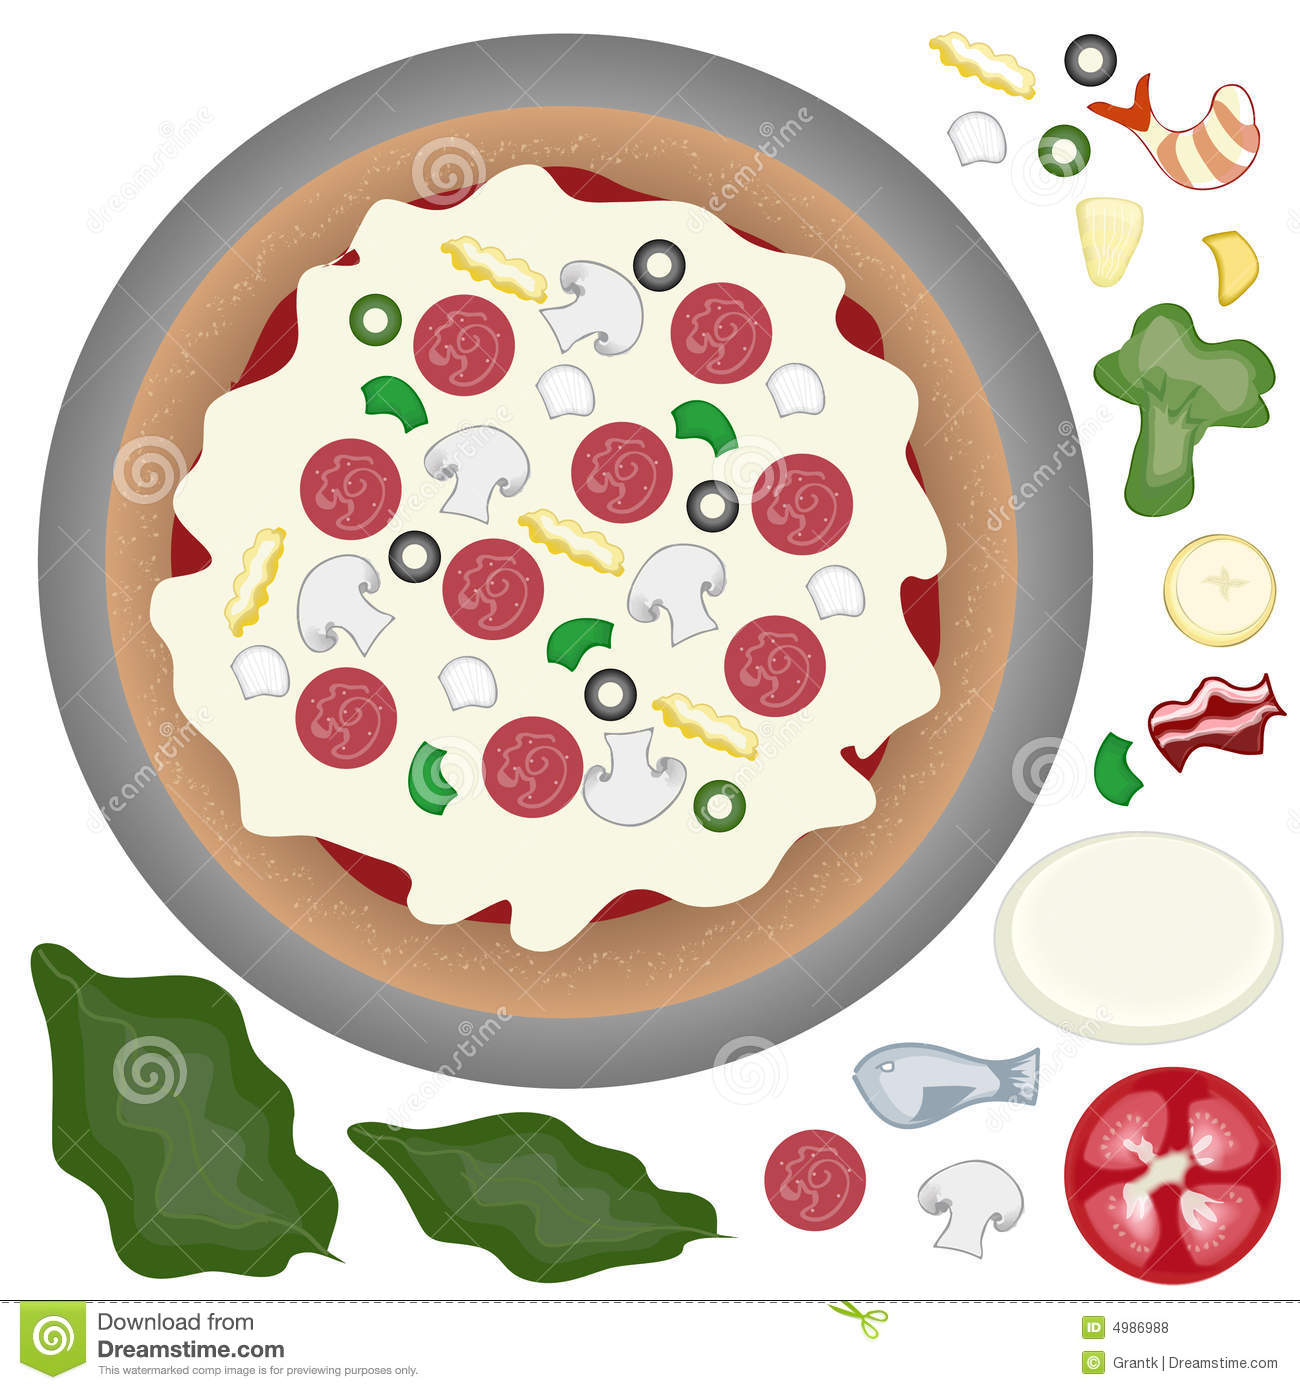 Clipart Pizza Toppings.